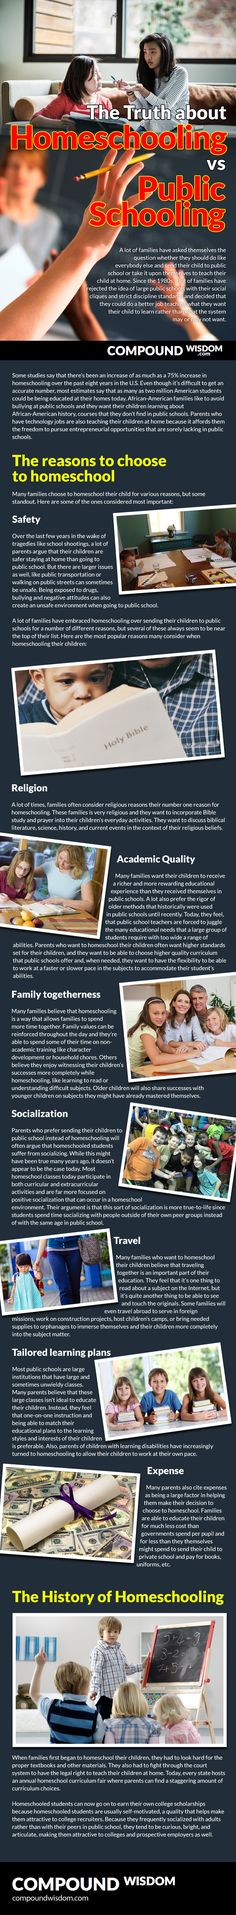 Some fascinating facts about homeschooling vs public schooling? Choosing to send your child to a public school or home school is a big decision to make which is why it would probably be best to research the benefits of each.Learn the factors today! #blog #blogger #parentingtips #homeschool